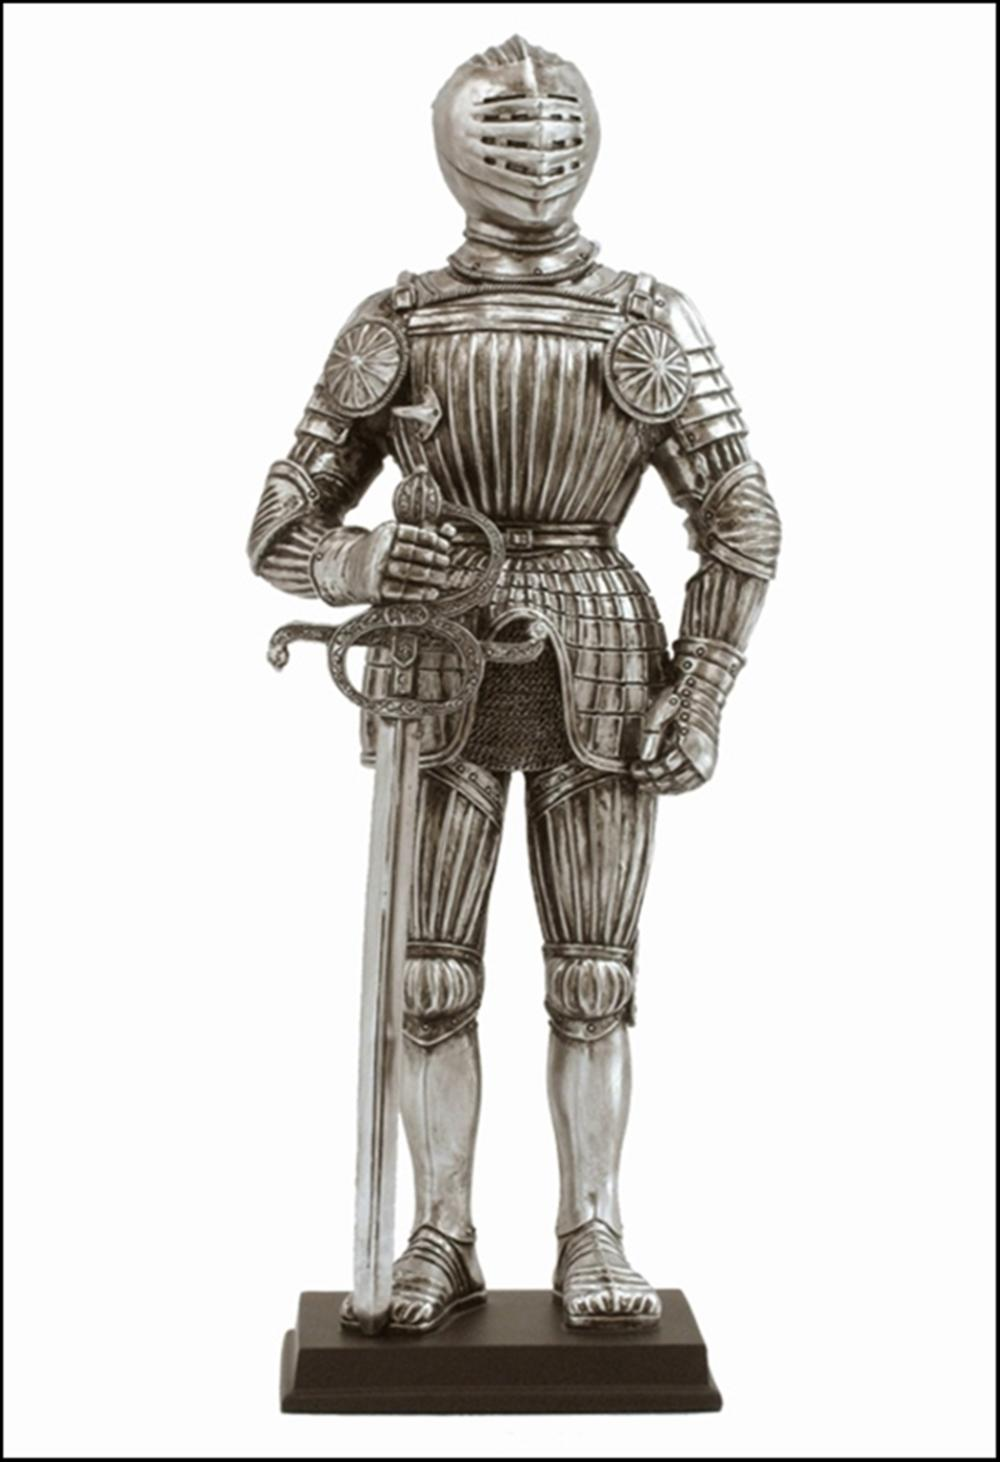 MEDIEVAL ARMOR -MAXIMILIAN STYLE ARMOR WITH SWORD IN RIGHT HAND